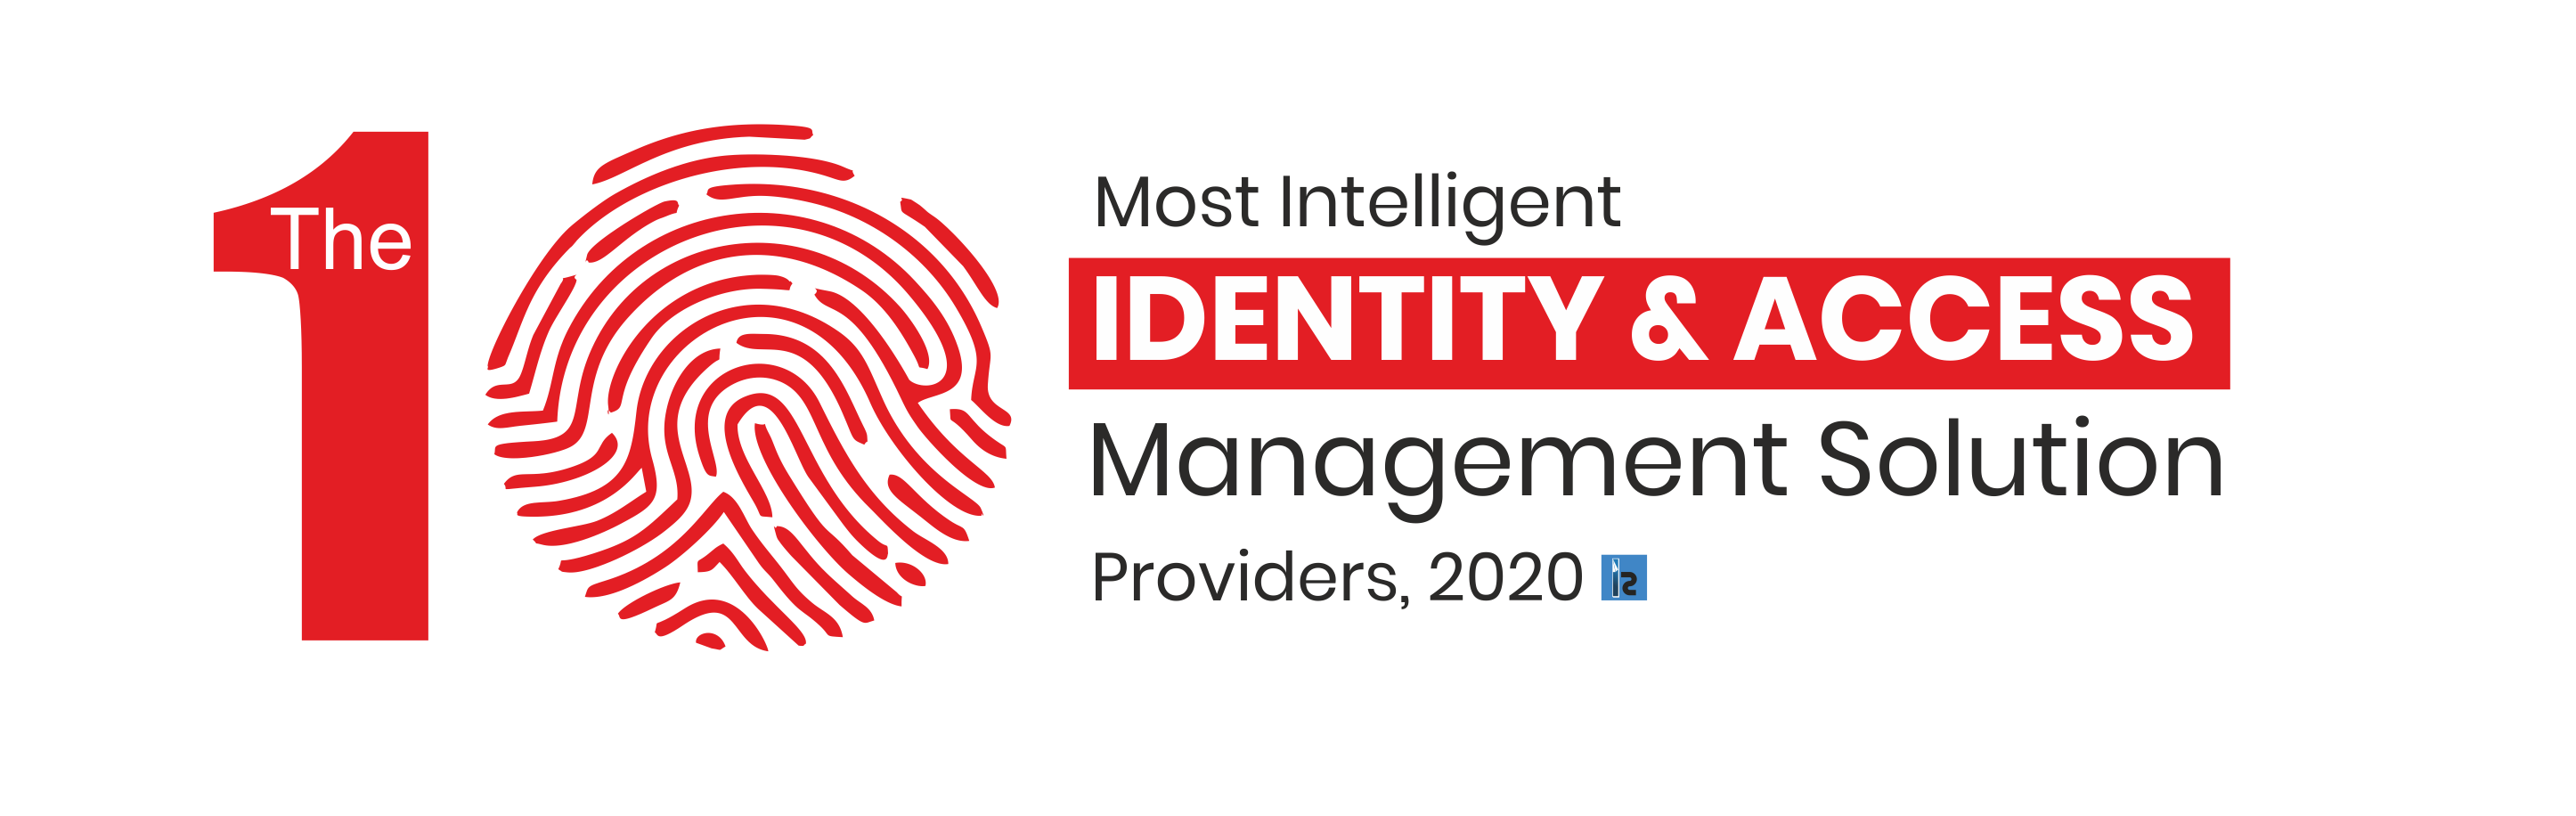 The 10 Most Intelligent Identity & Access Management Solution Providers, 2020